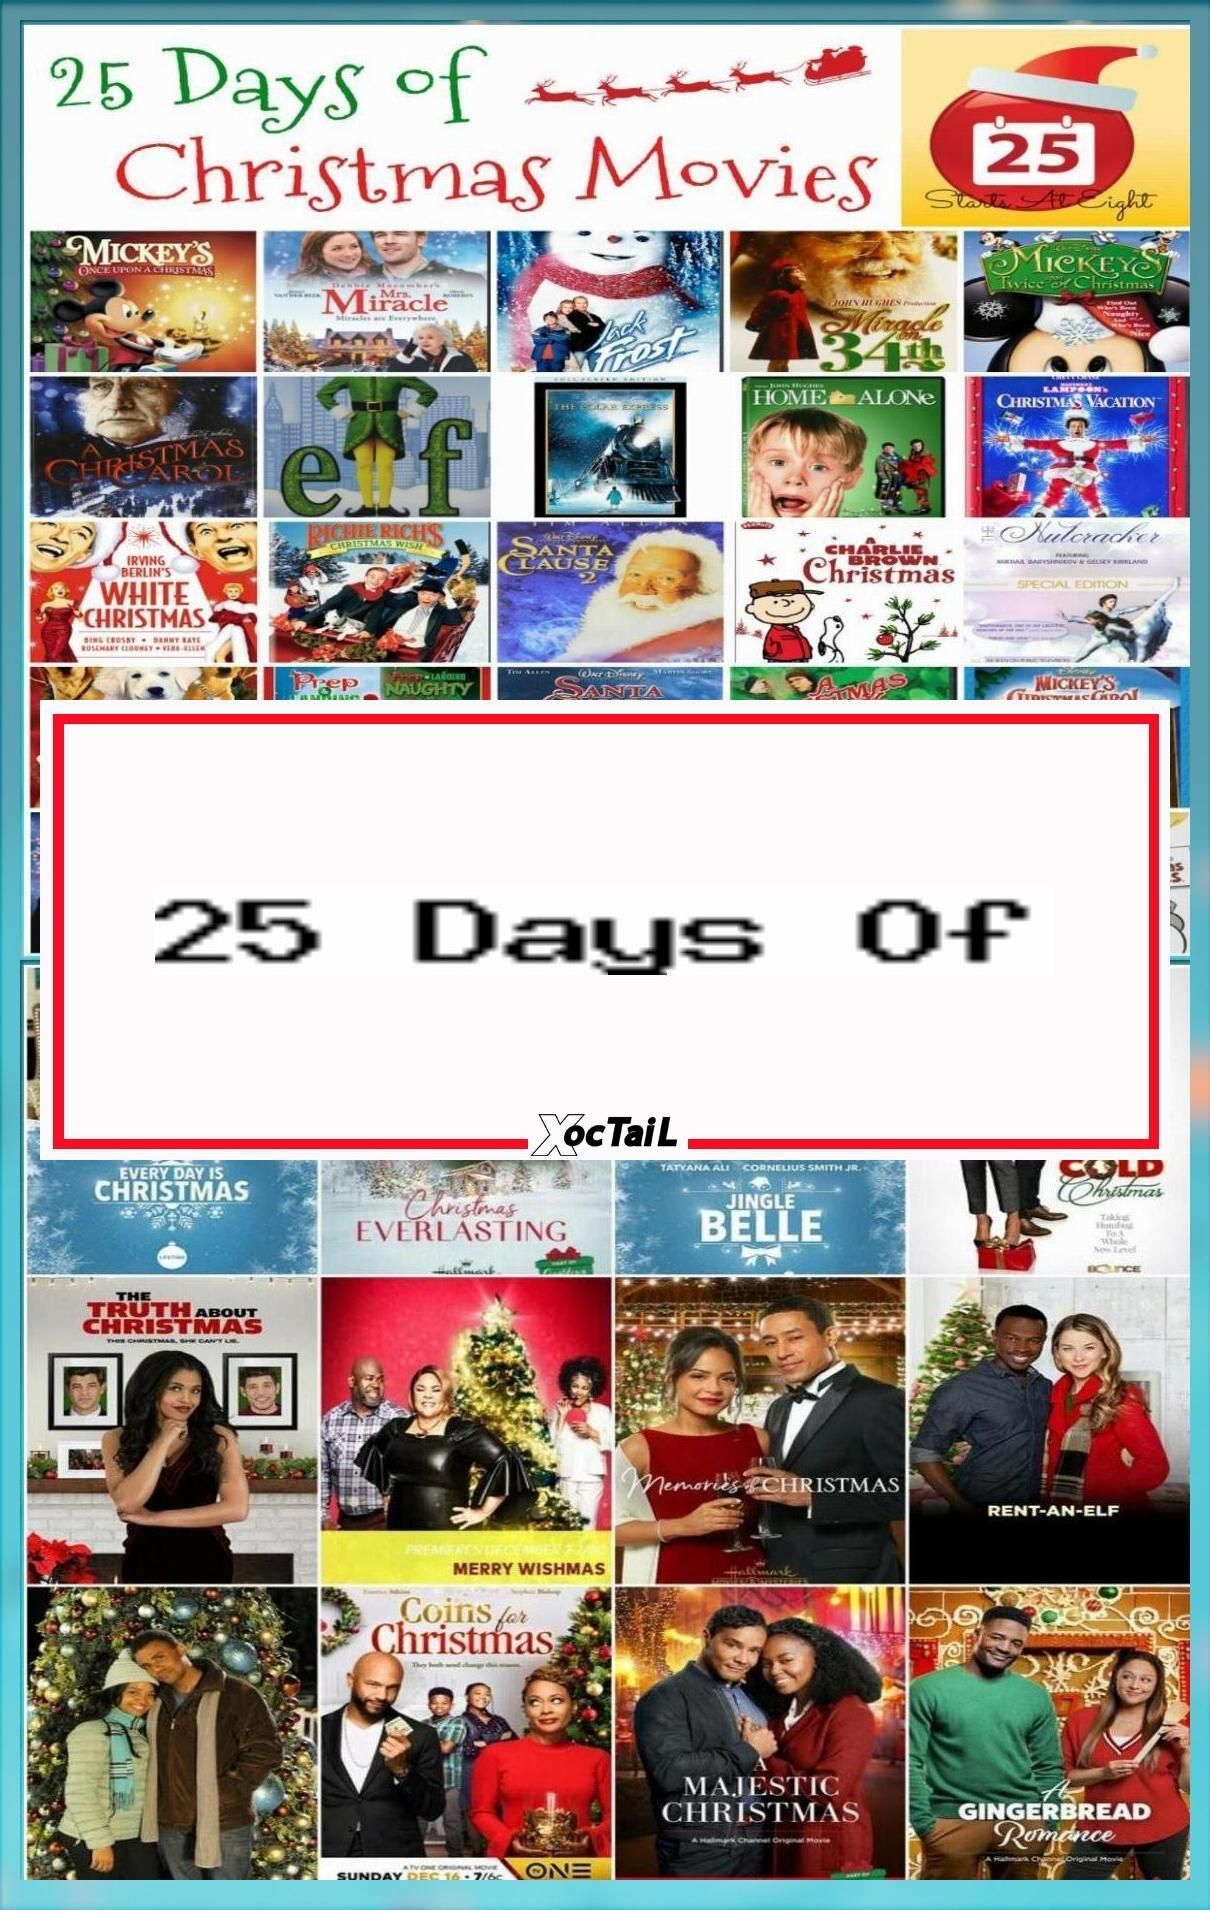 25 Days Of Christmas Movies With Free Printable List In 2020 Hallmark Channel Christmas Movies Kids Christmas Movies Animated Christmas Movies